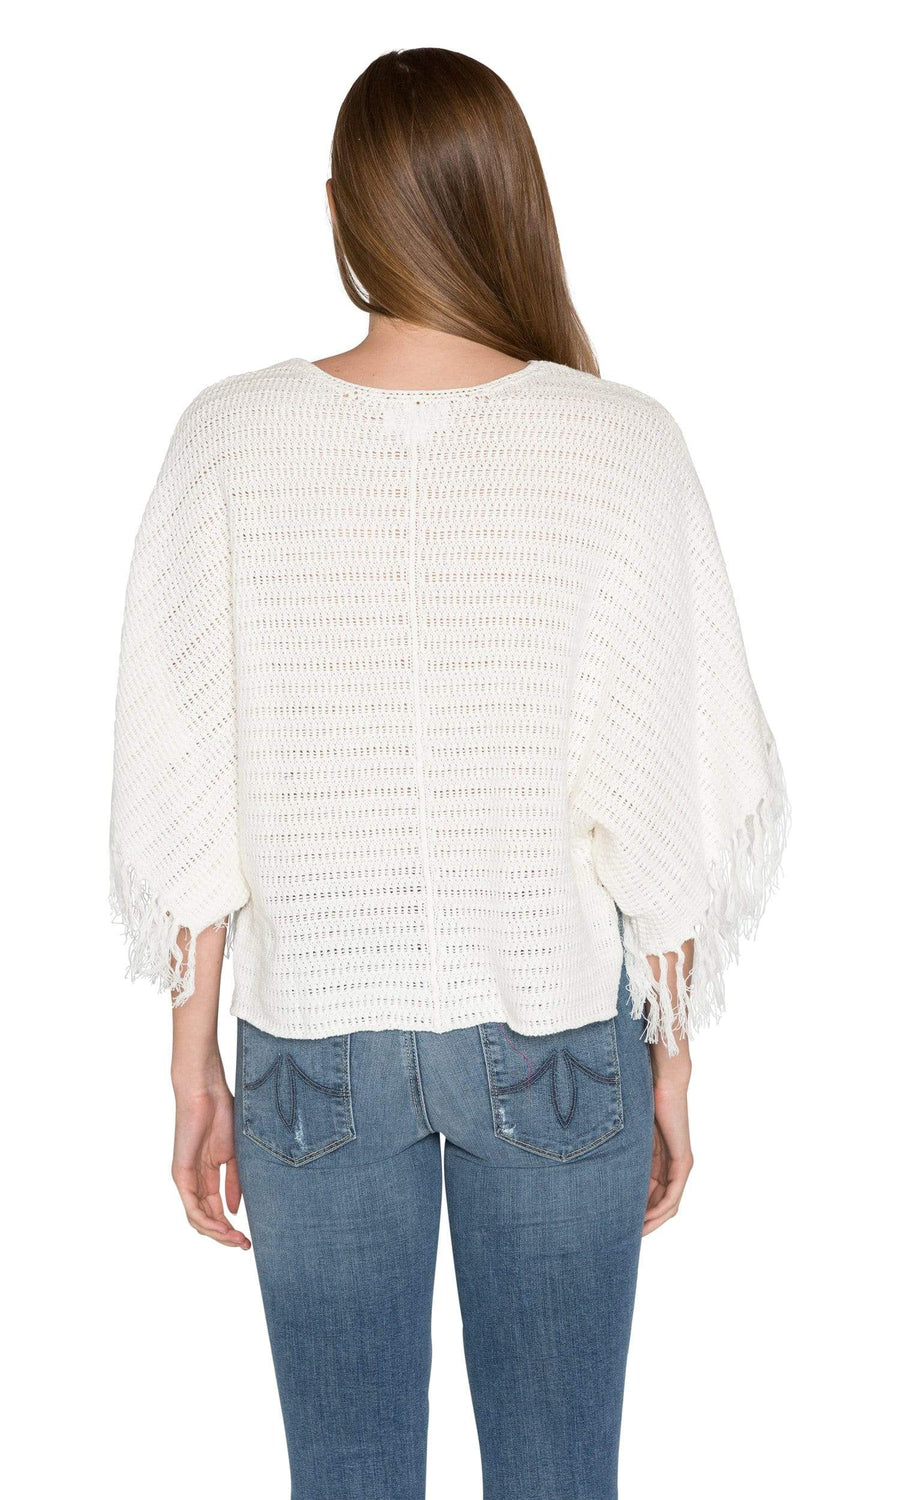 Velvet by Graham & Spencer Ashlie Crochet Knit Fringe Sleeve Sweater